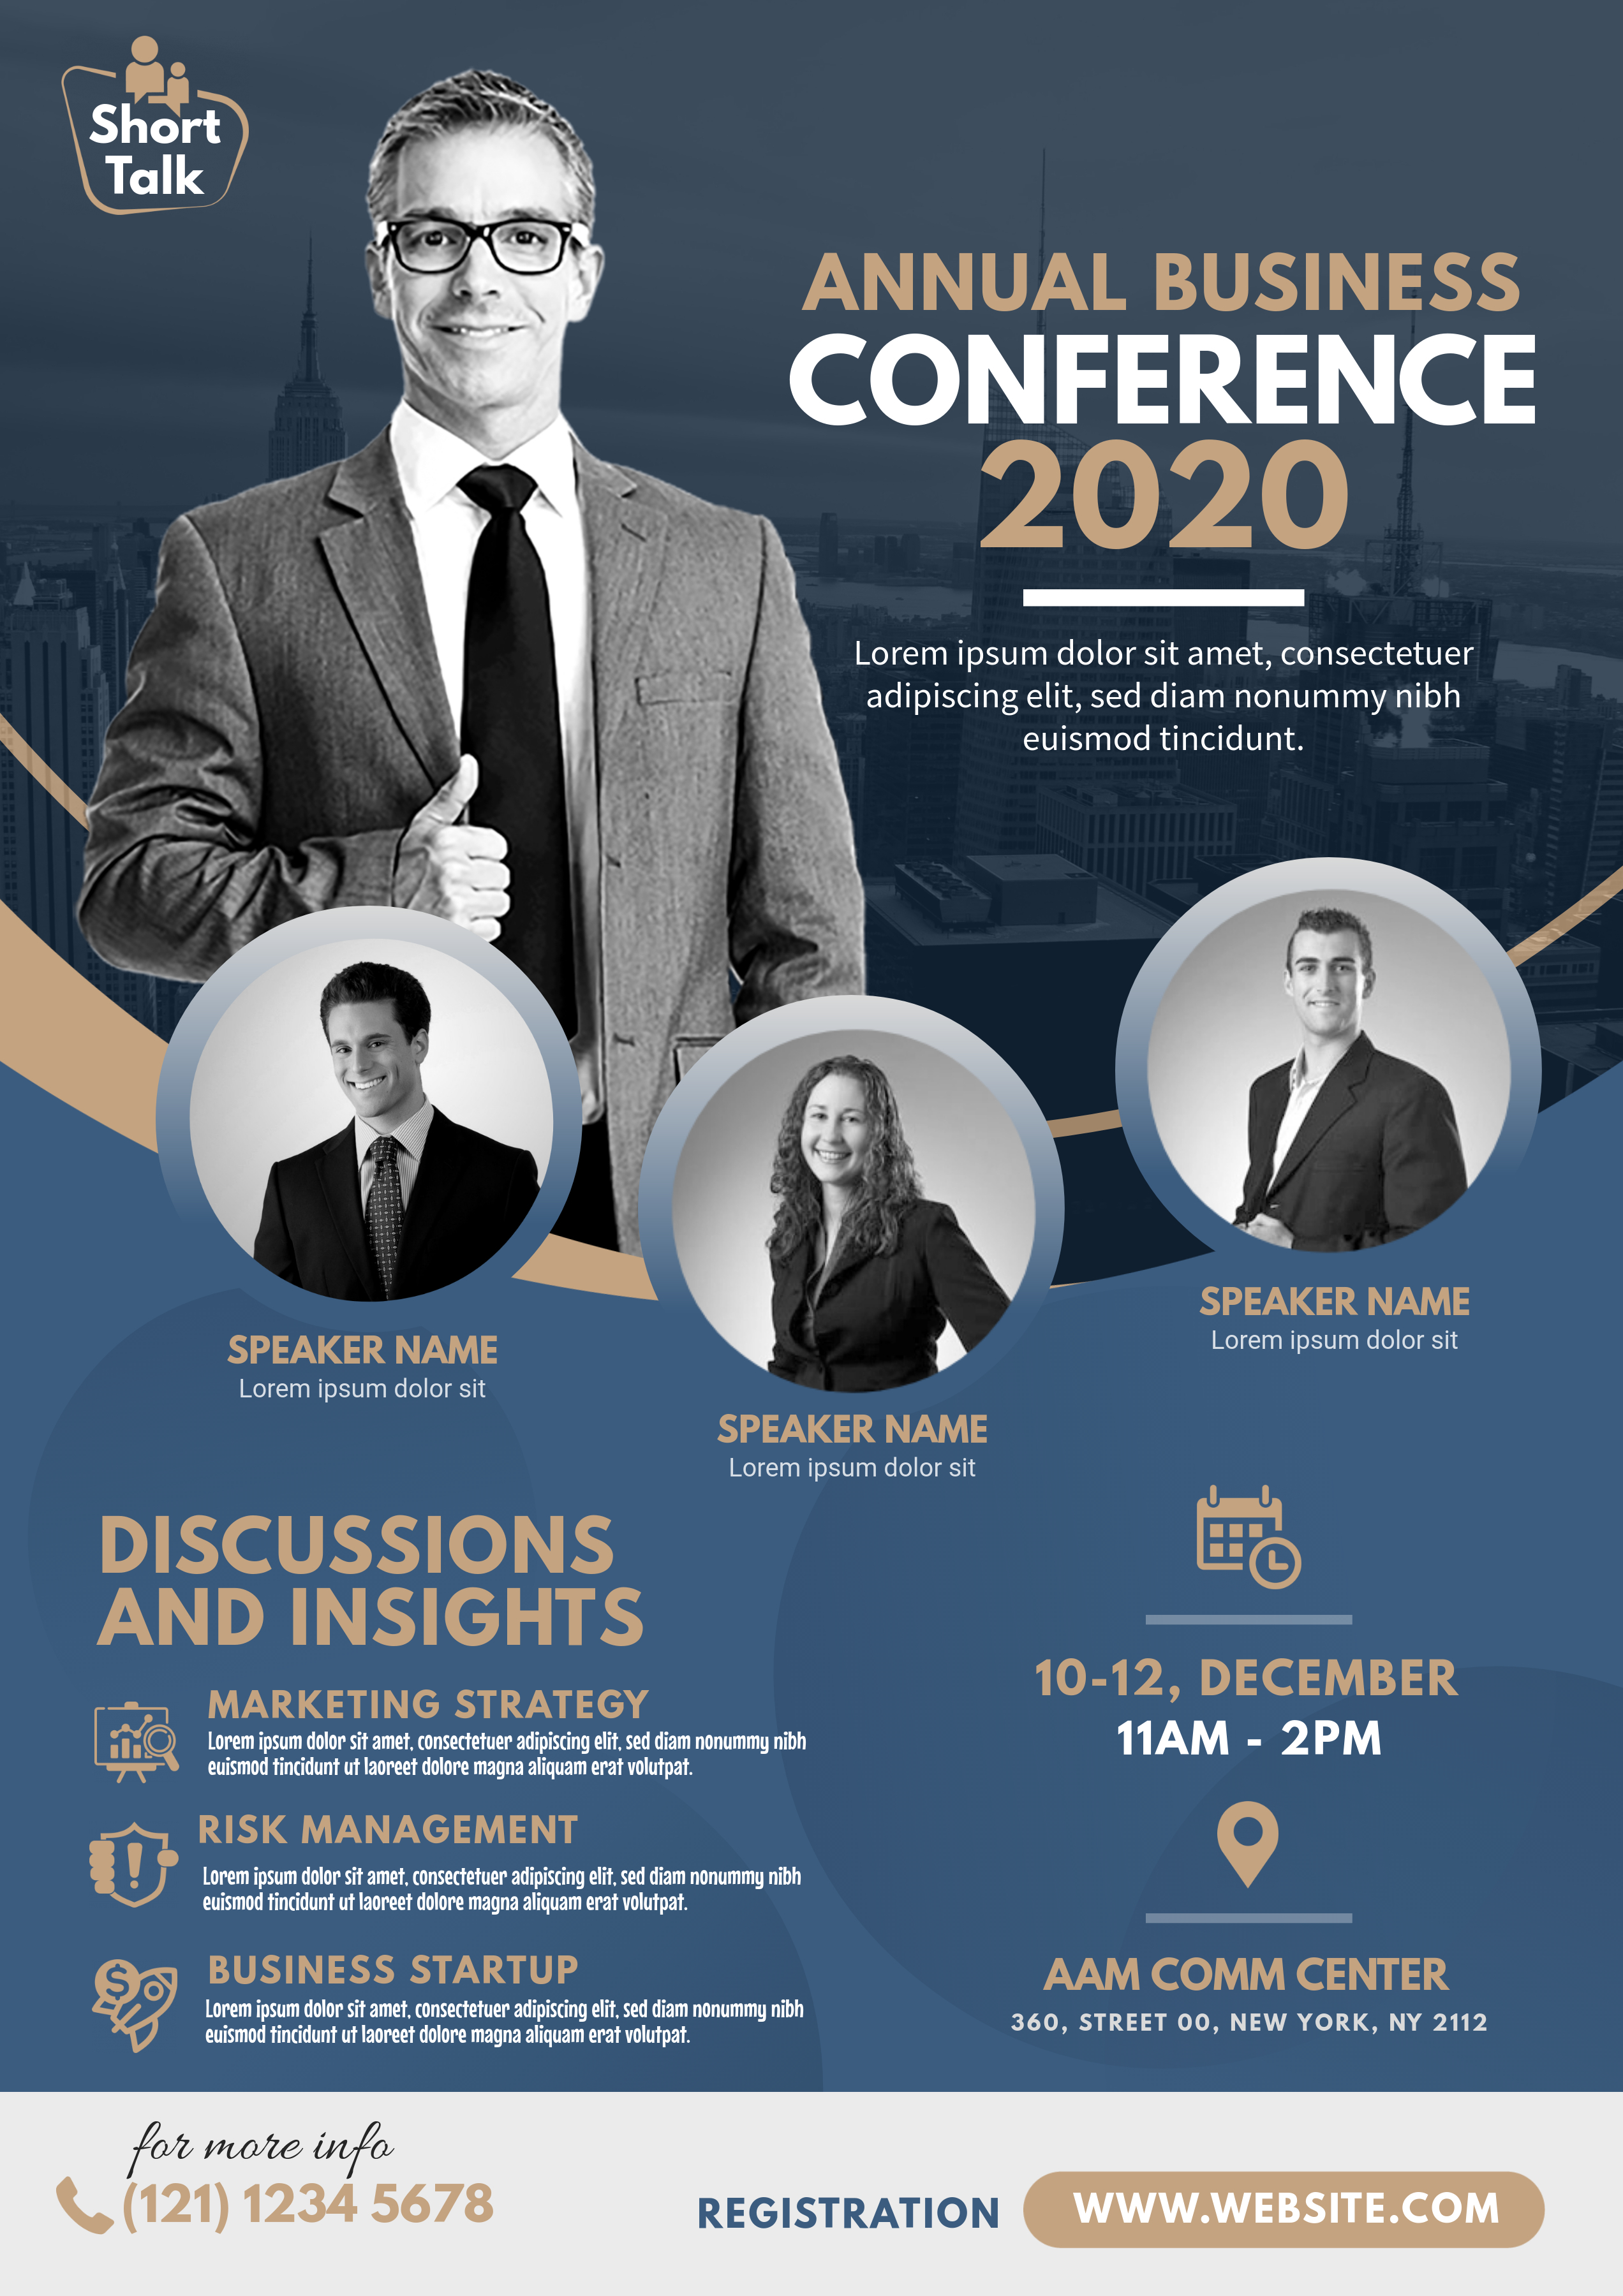 Copy_of_Conference_Flyer_Template.jpg